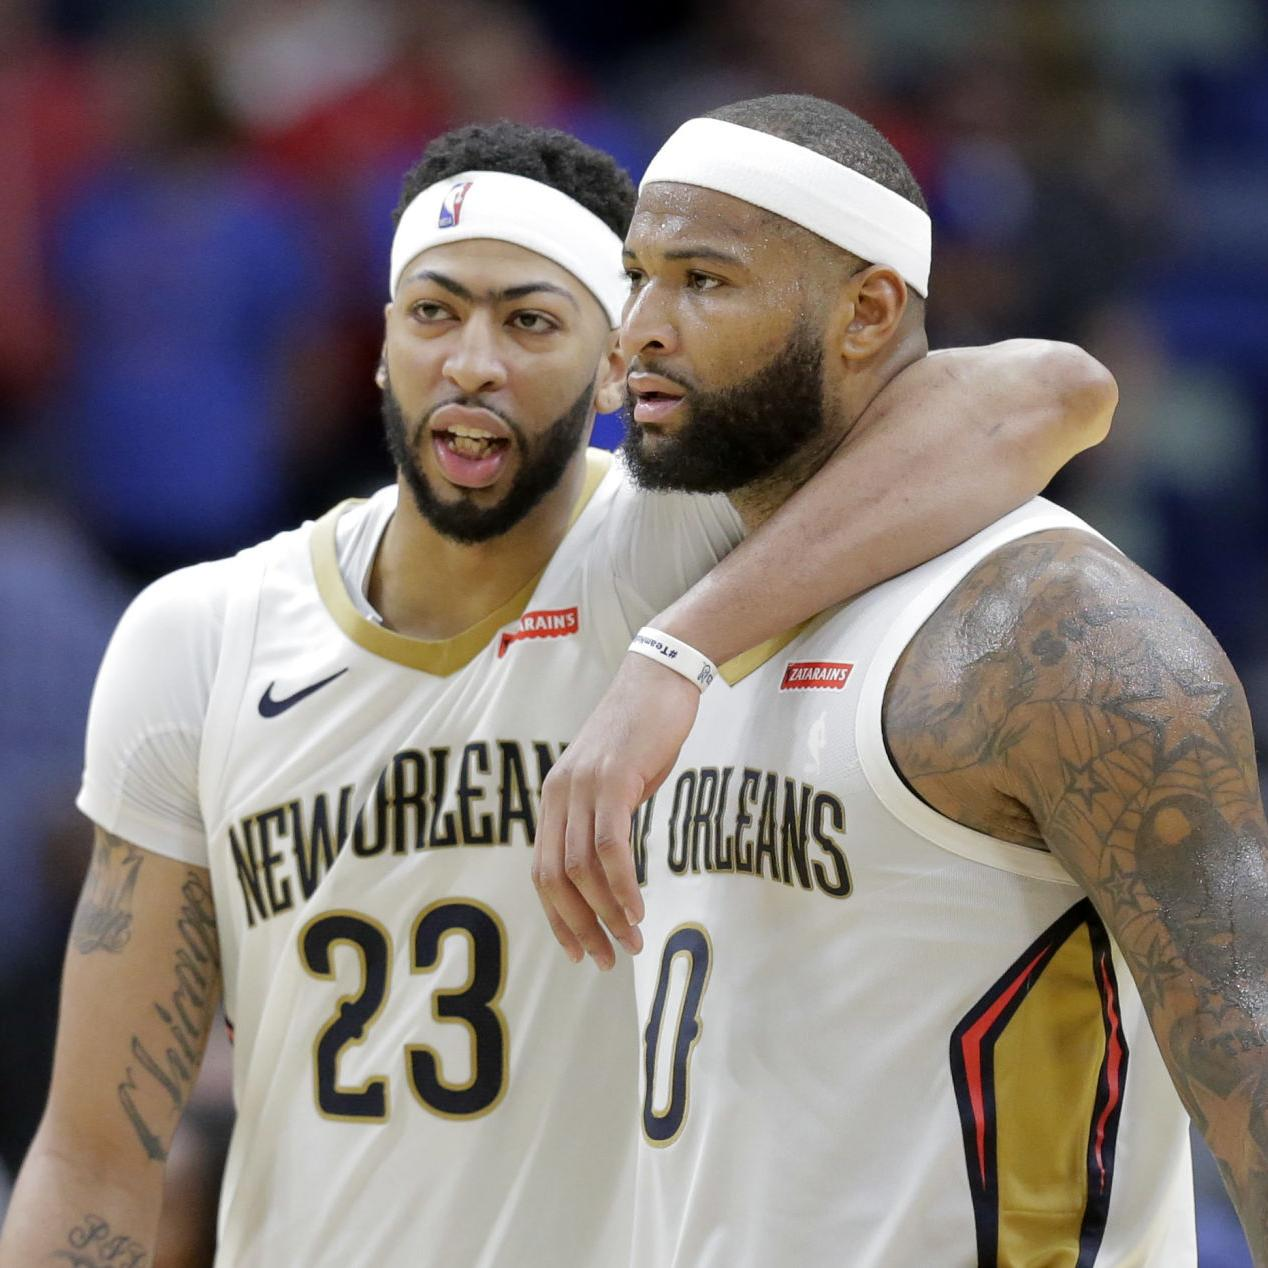 reputable site 8a2df 49533 Report: DeMarcus Cousins to rejoin former Pelicans teammate ...